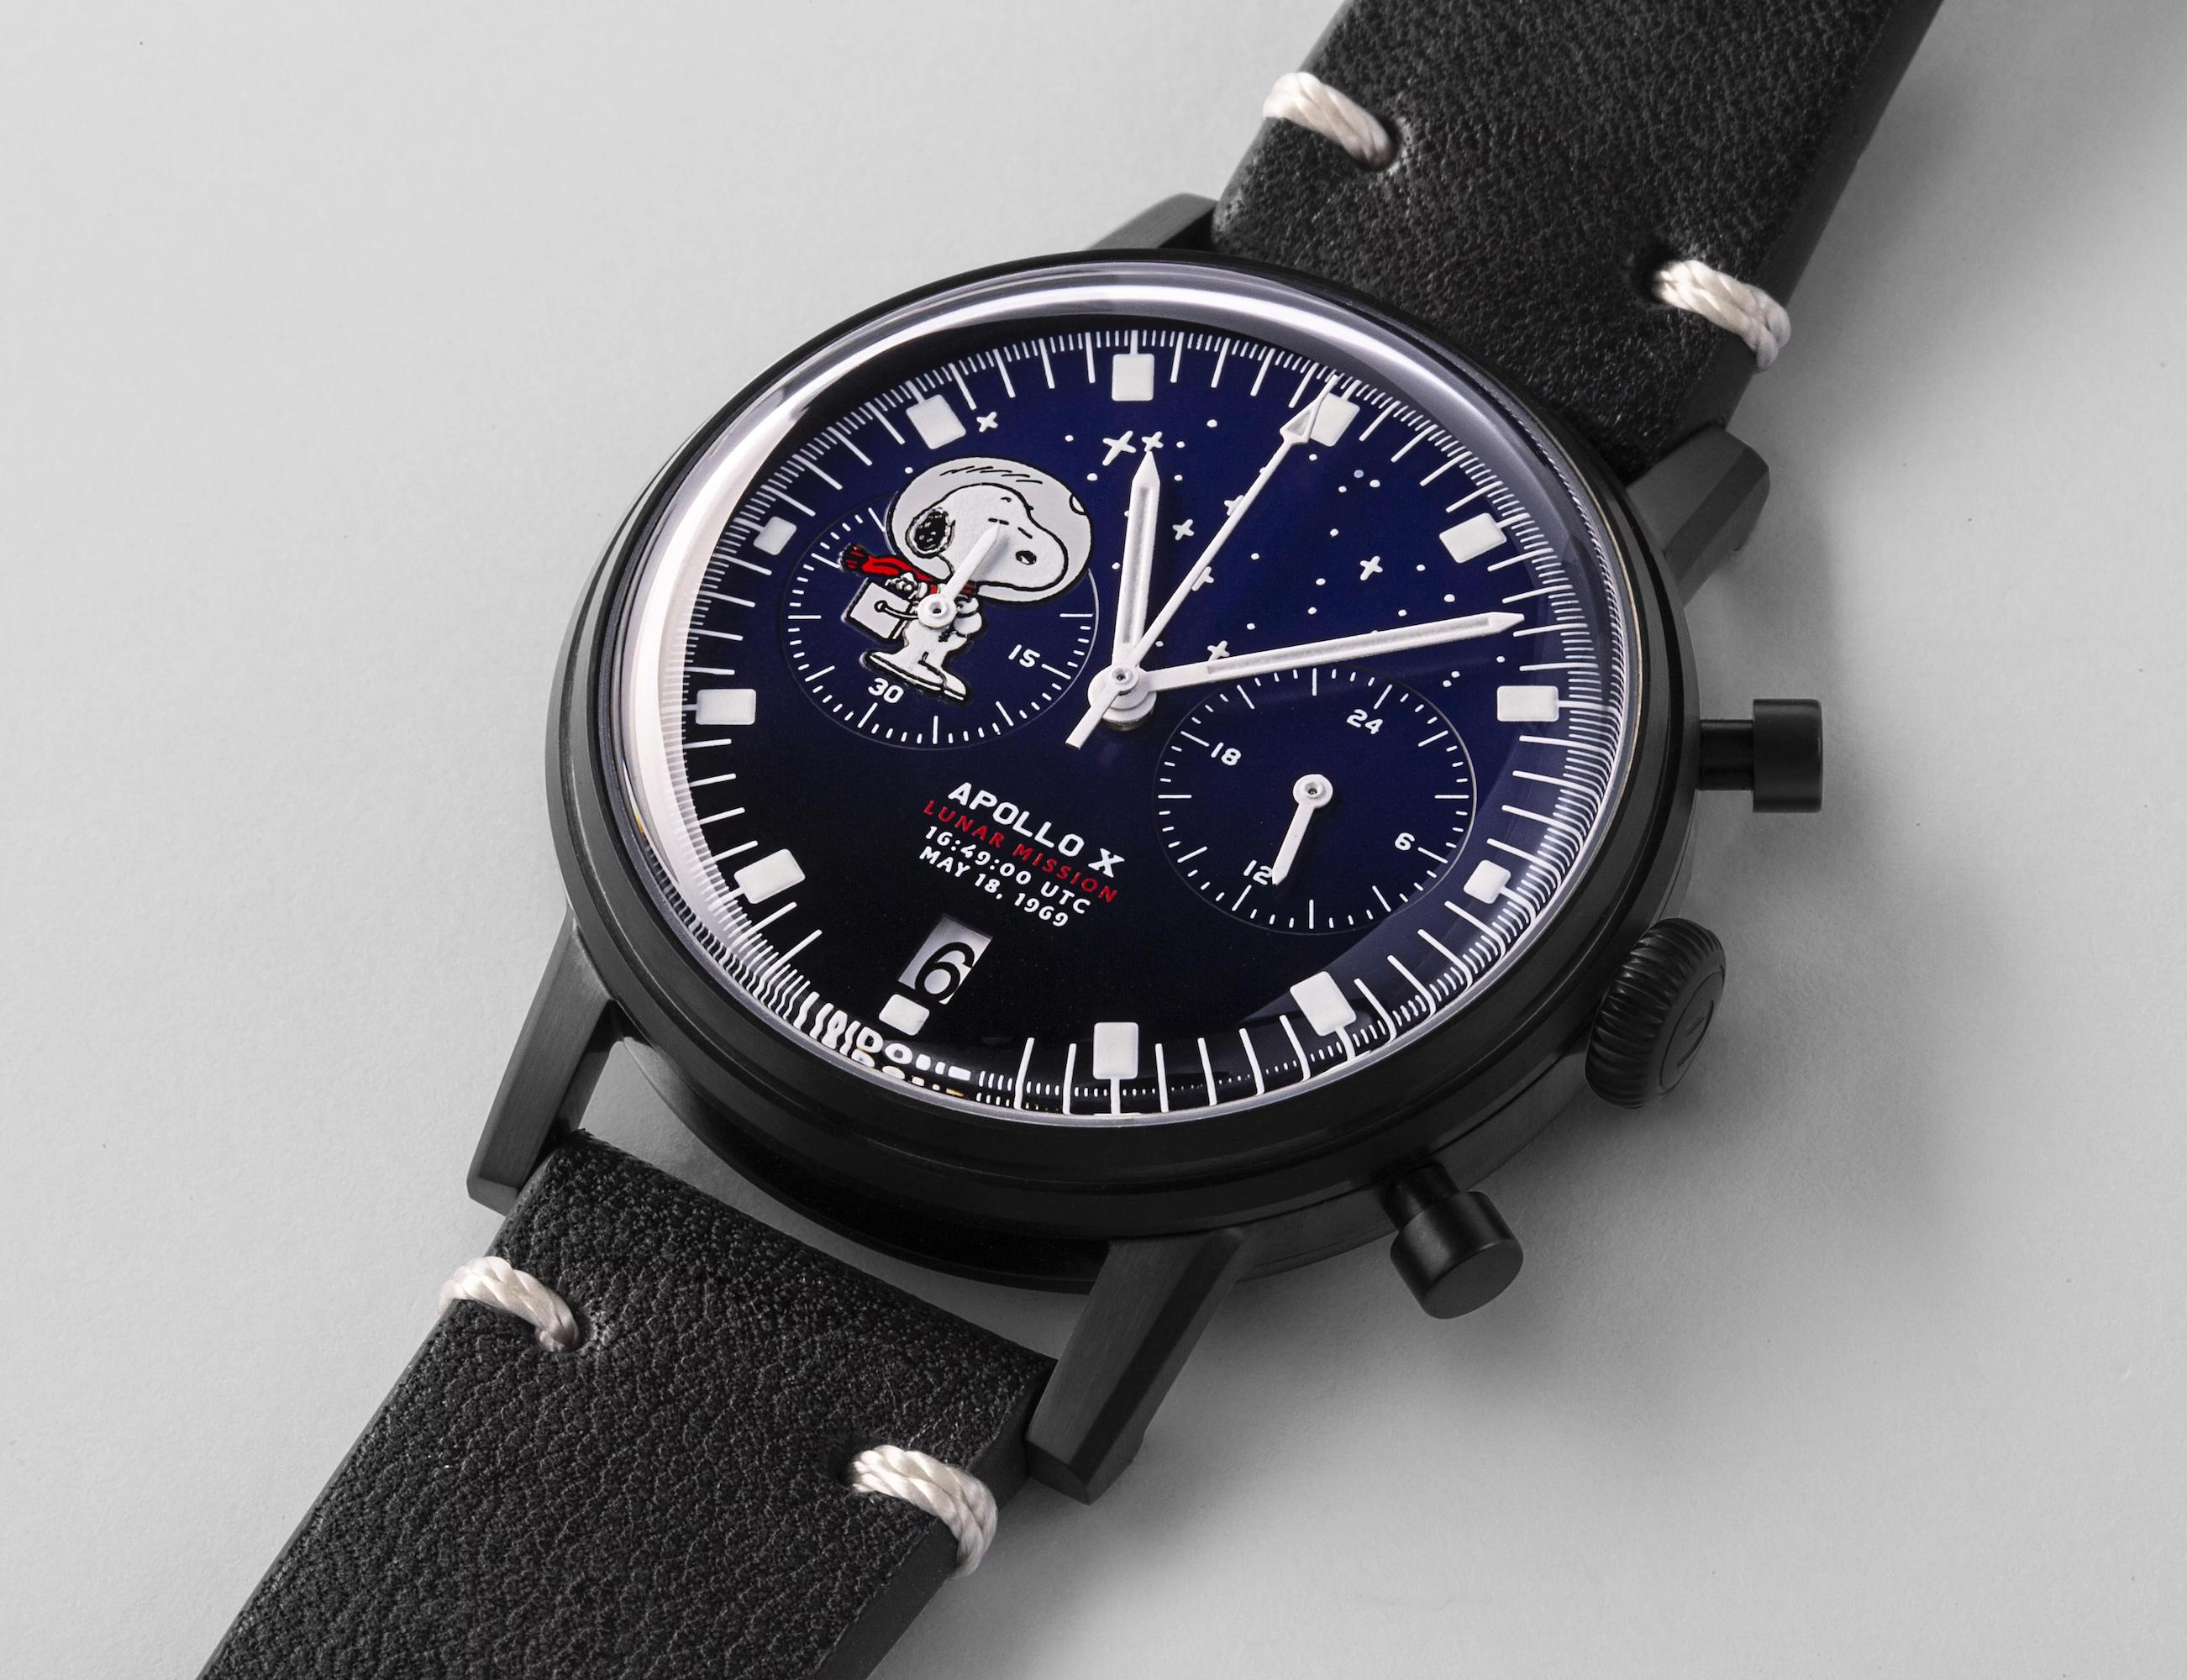 apollo 11 space mission watch - photo #8